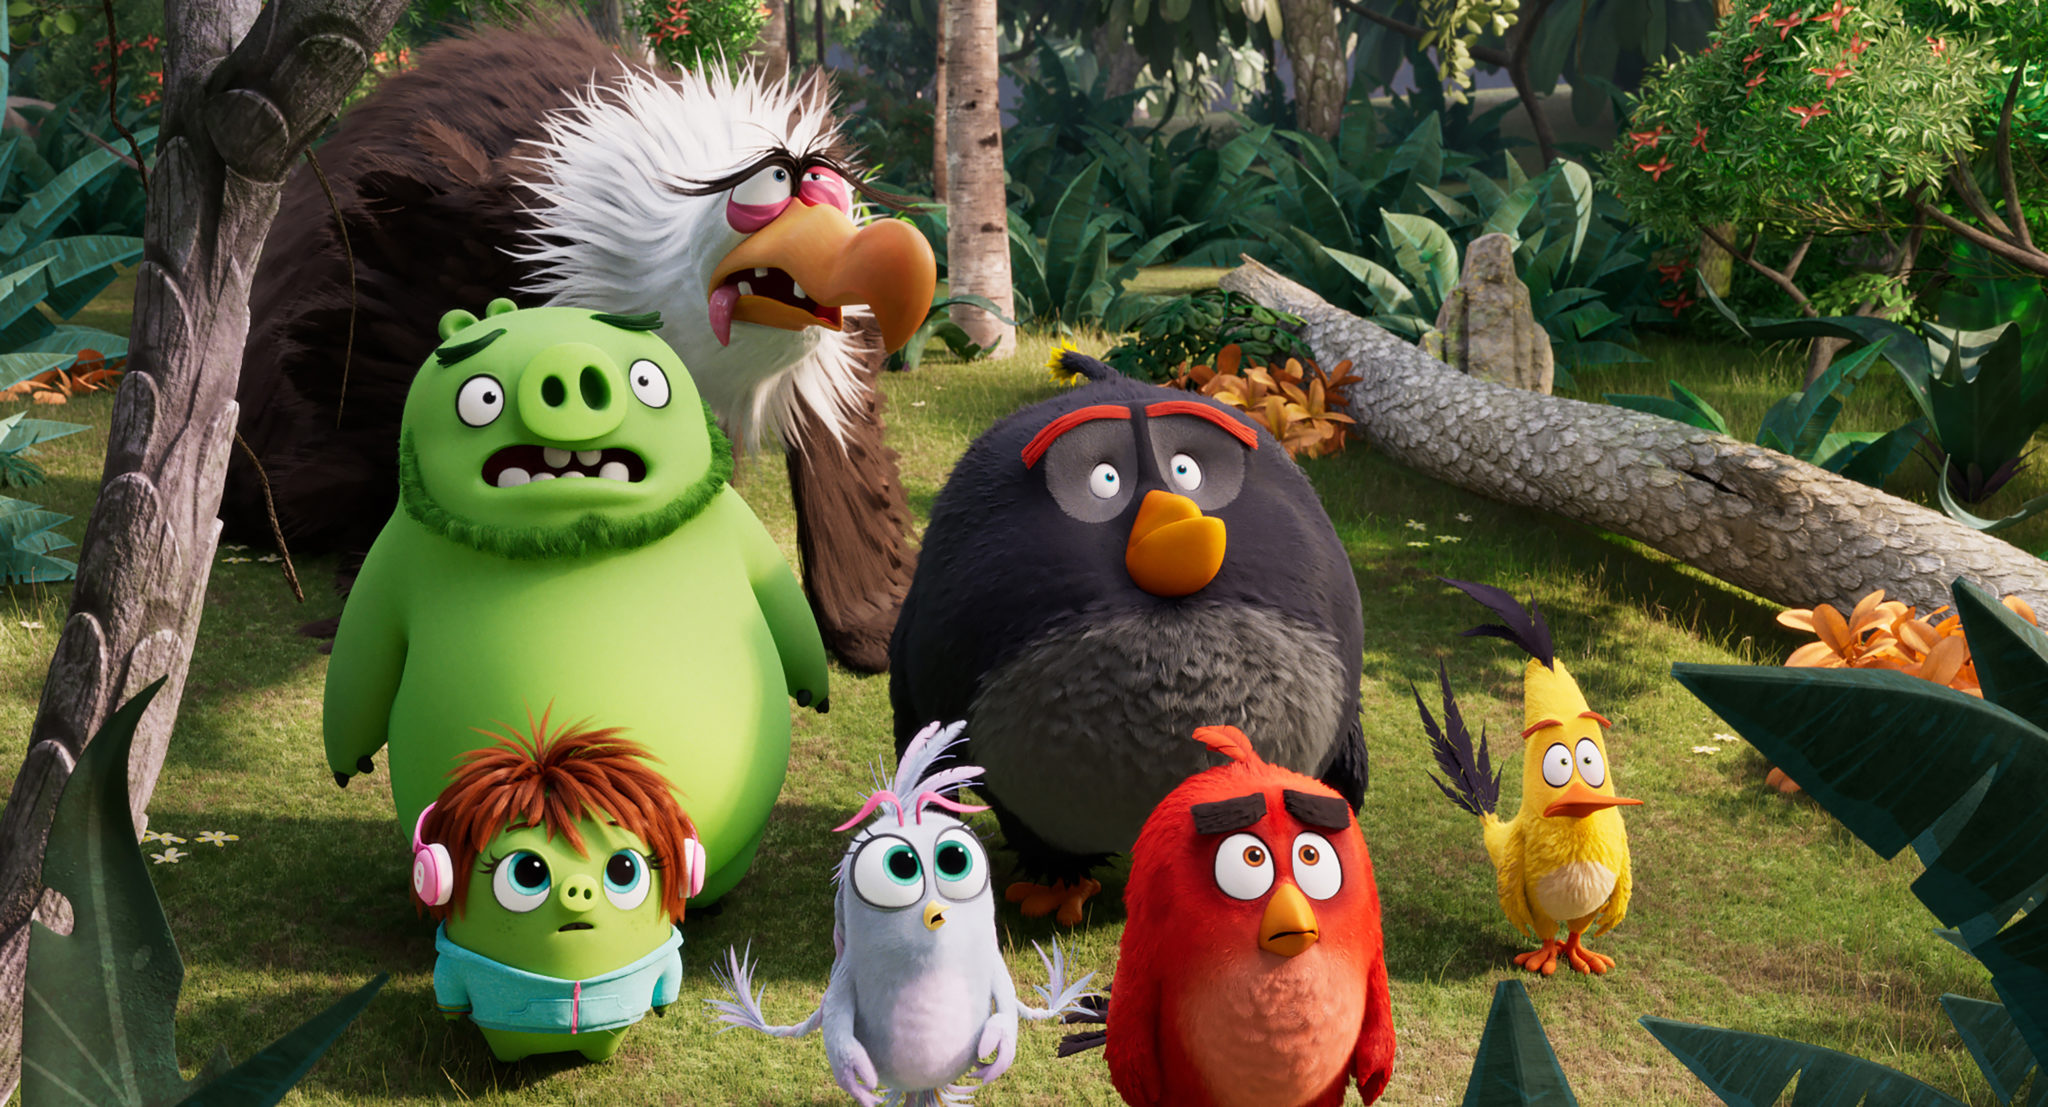 The Angry Birds 2 Box Office Collection Day 3